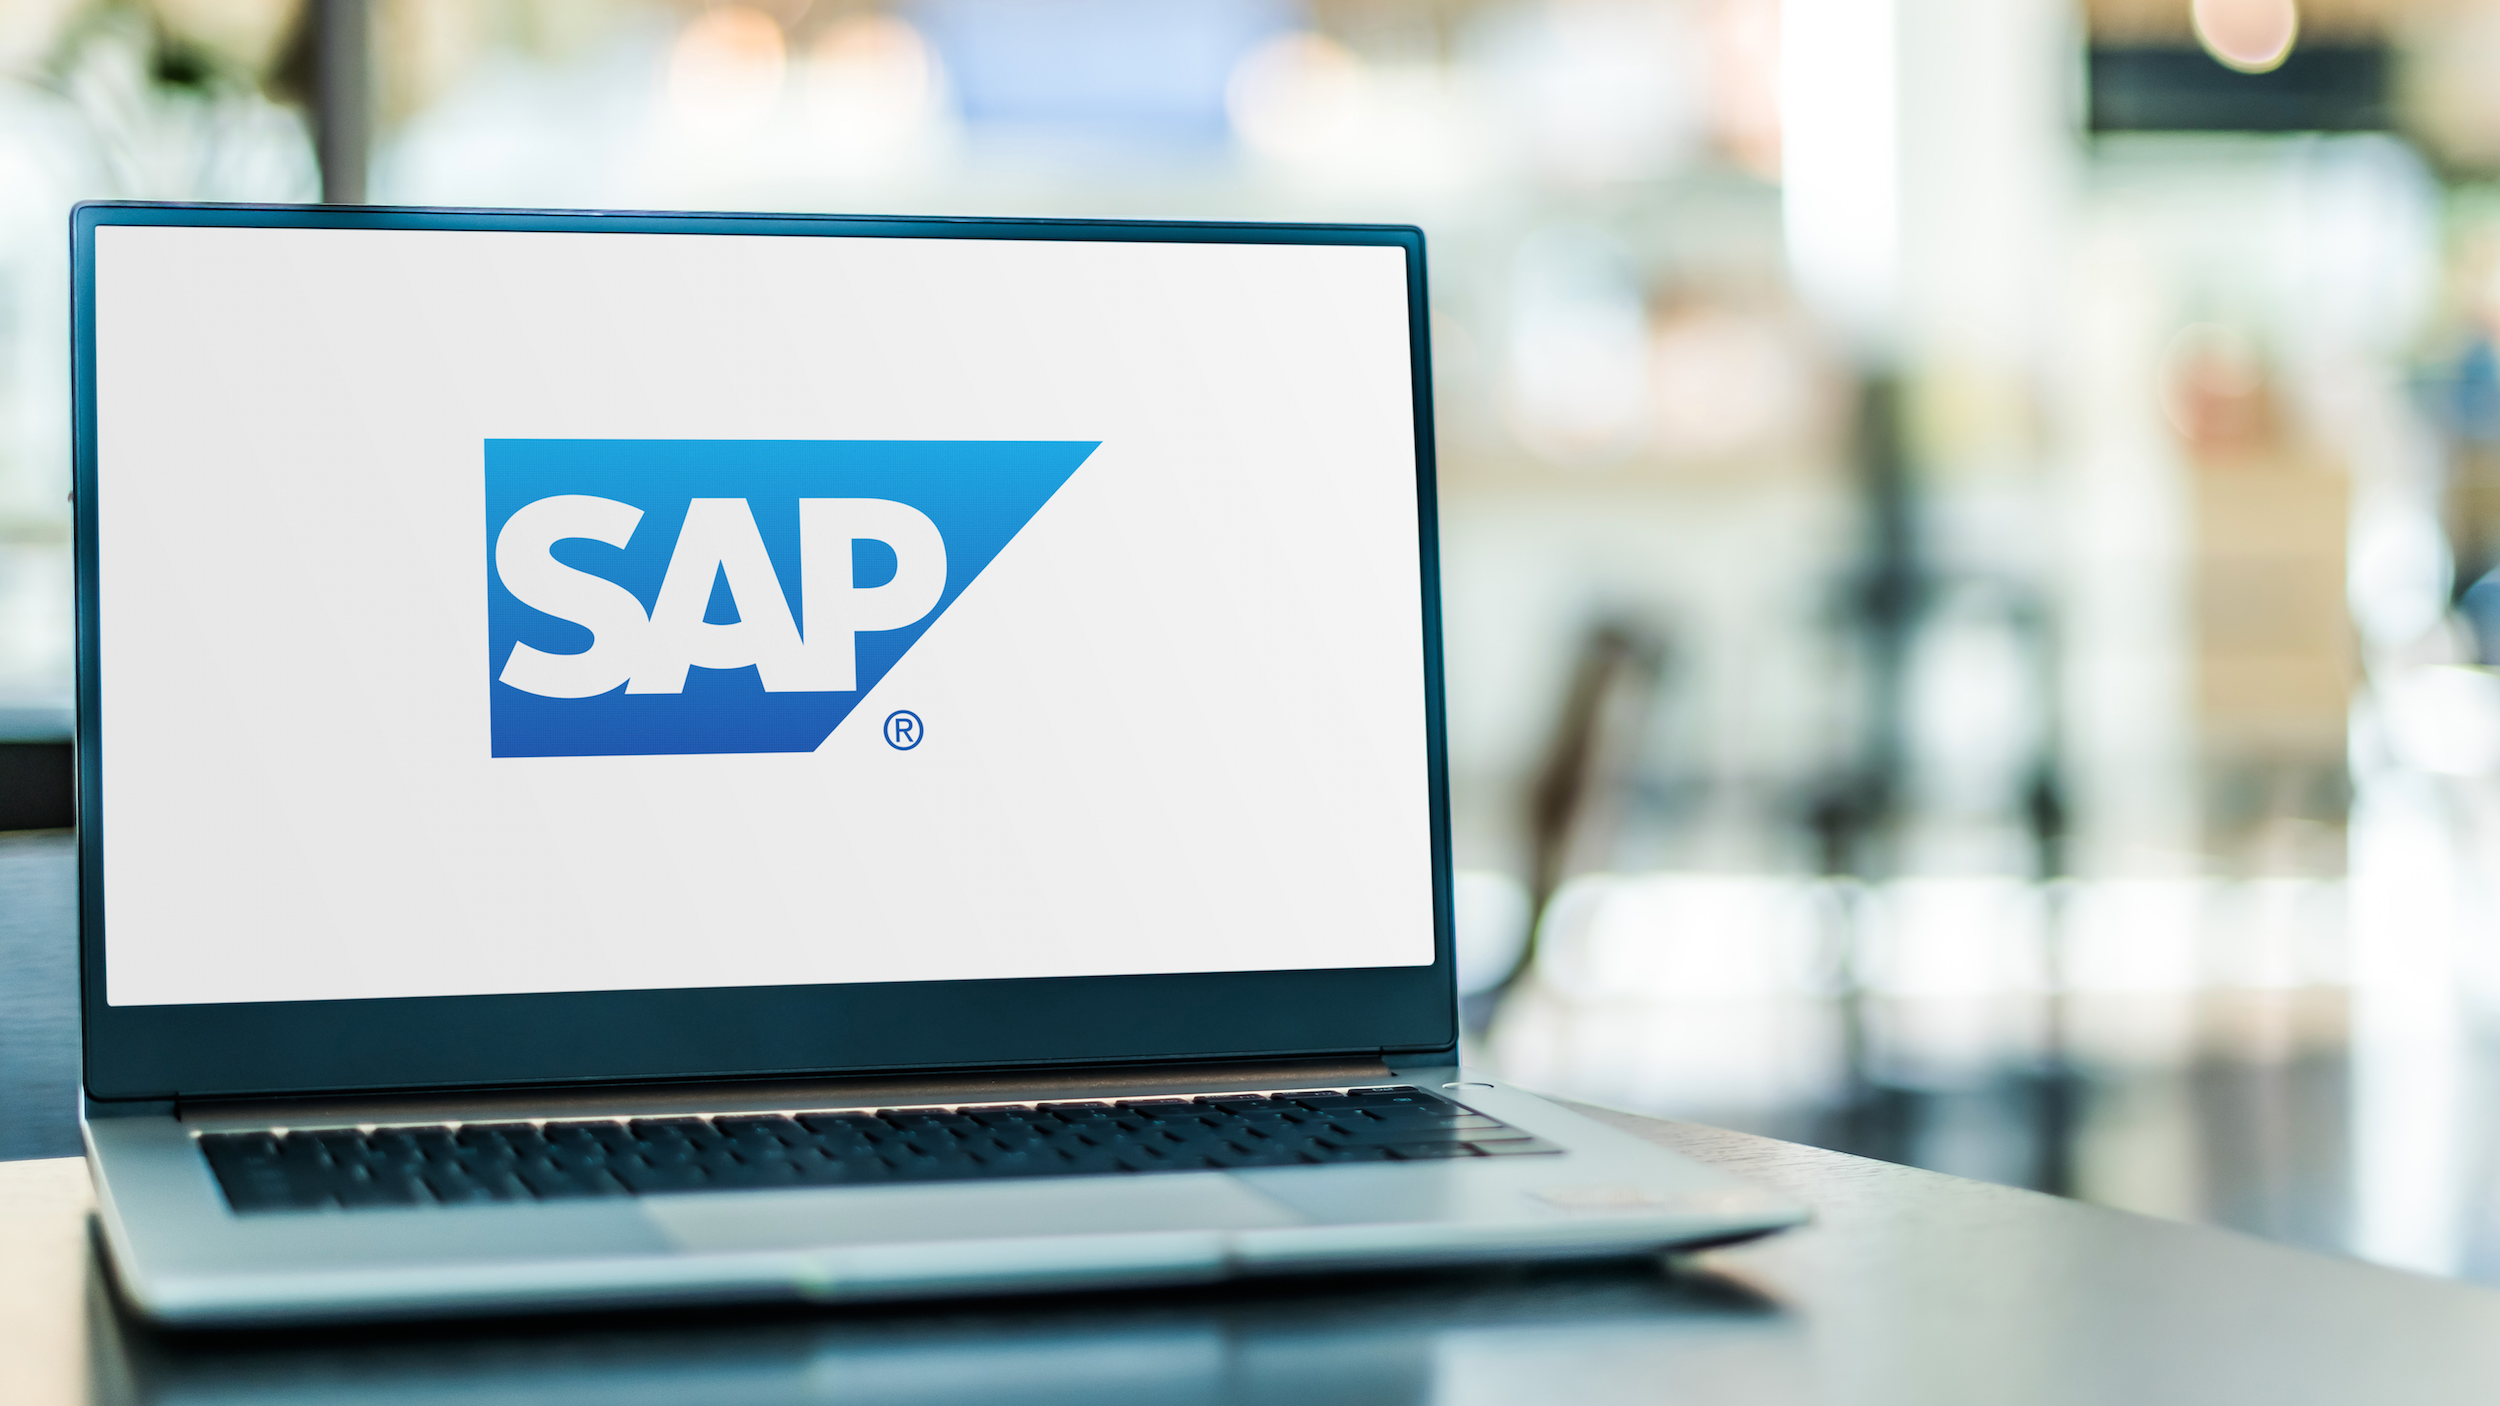 3 Benefits of Virtualizing SAP Apps Instead of Re-architecting